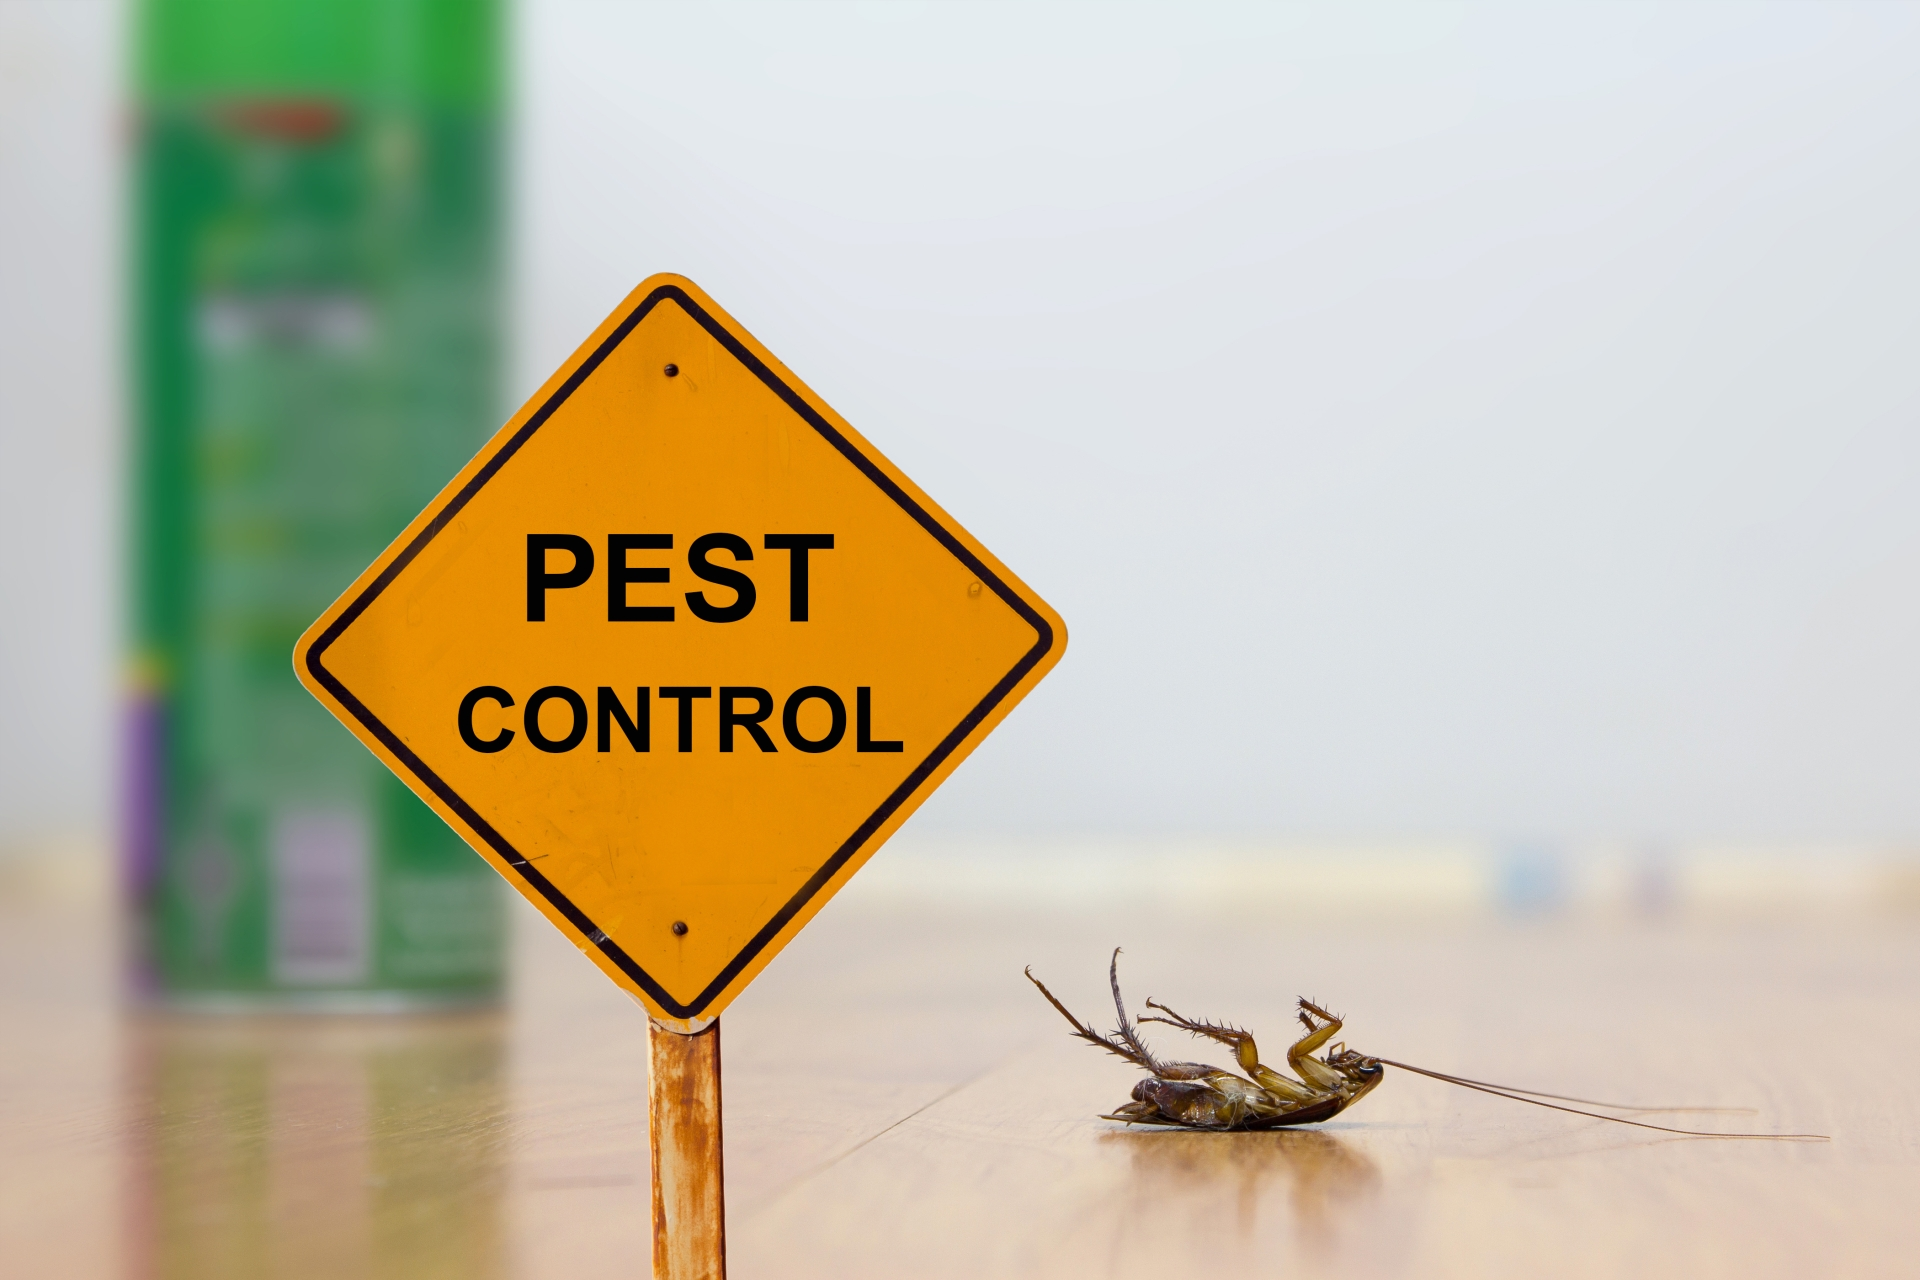 24 Hour Pest Control, Pest Control in Kensal Green, NW10. Call Now 020 8166 9746